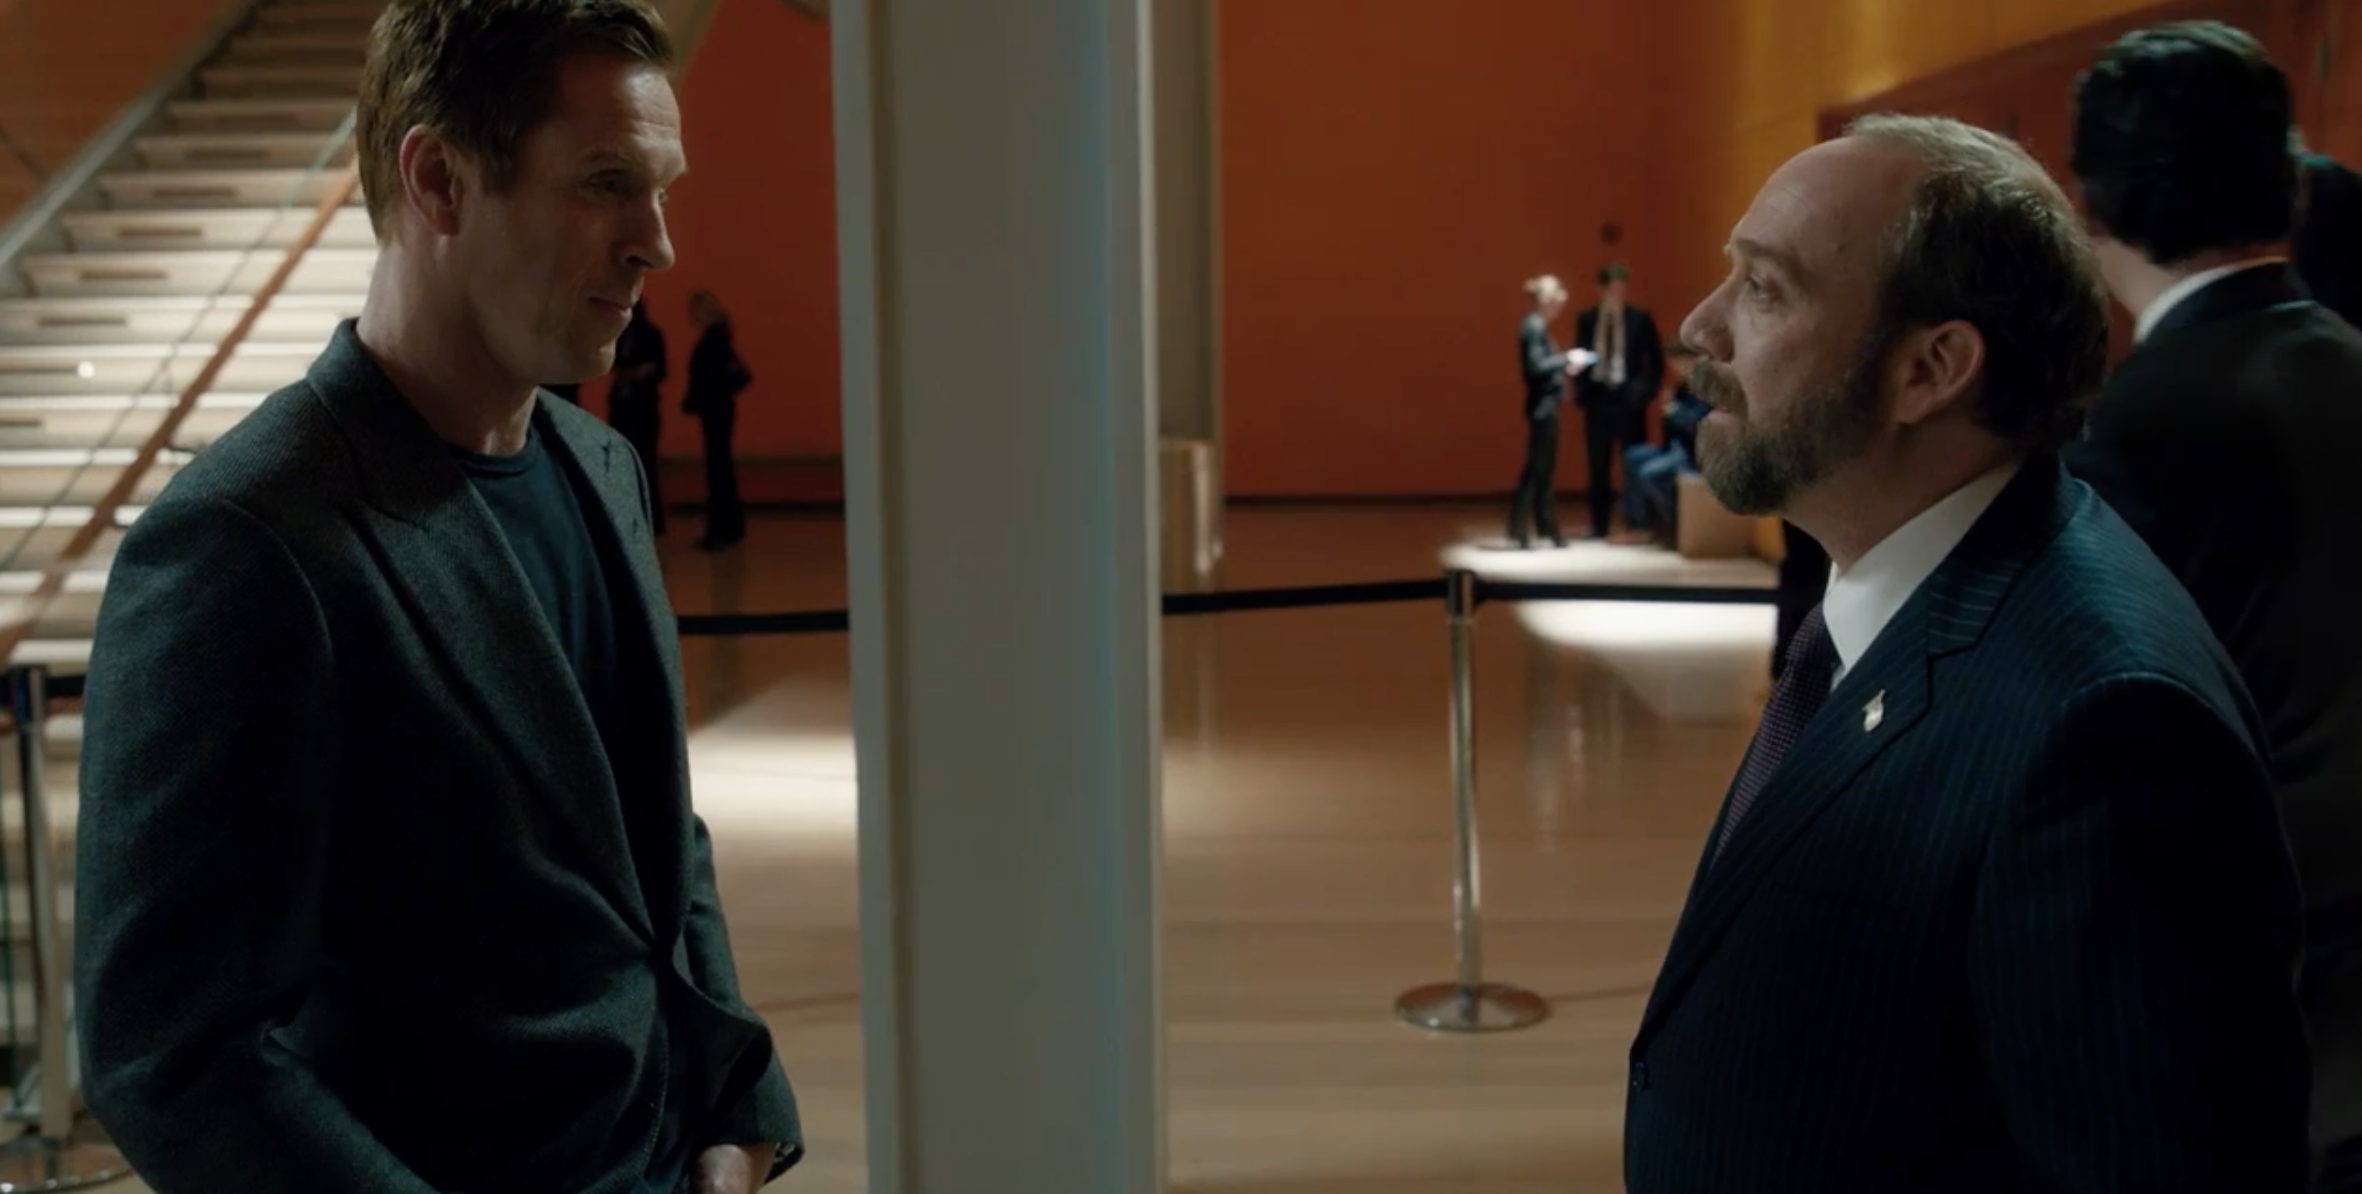 """Damian Lewis , left, reportedly portrays a hedge fund titan patterned after  Steven A. Cohen , and Paul Giamatti portrays a Federal prosecutor patterned after U.S. Attorney Preet Bharara in the Showtime premium cable drama, """"Billions."""" Credit/Showtime/Fair Use"""